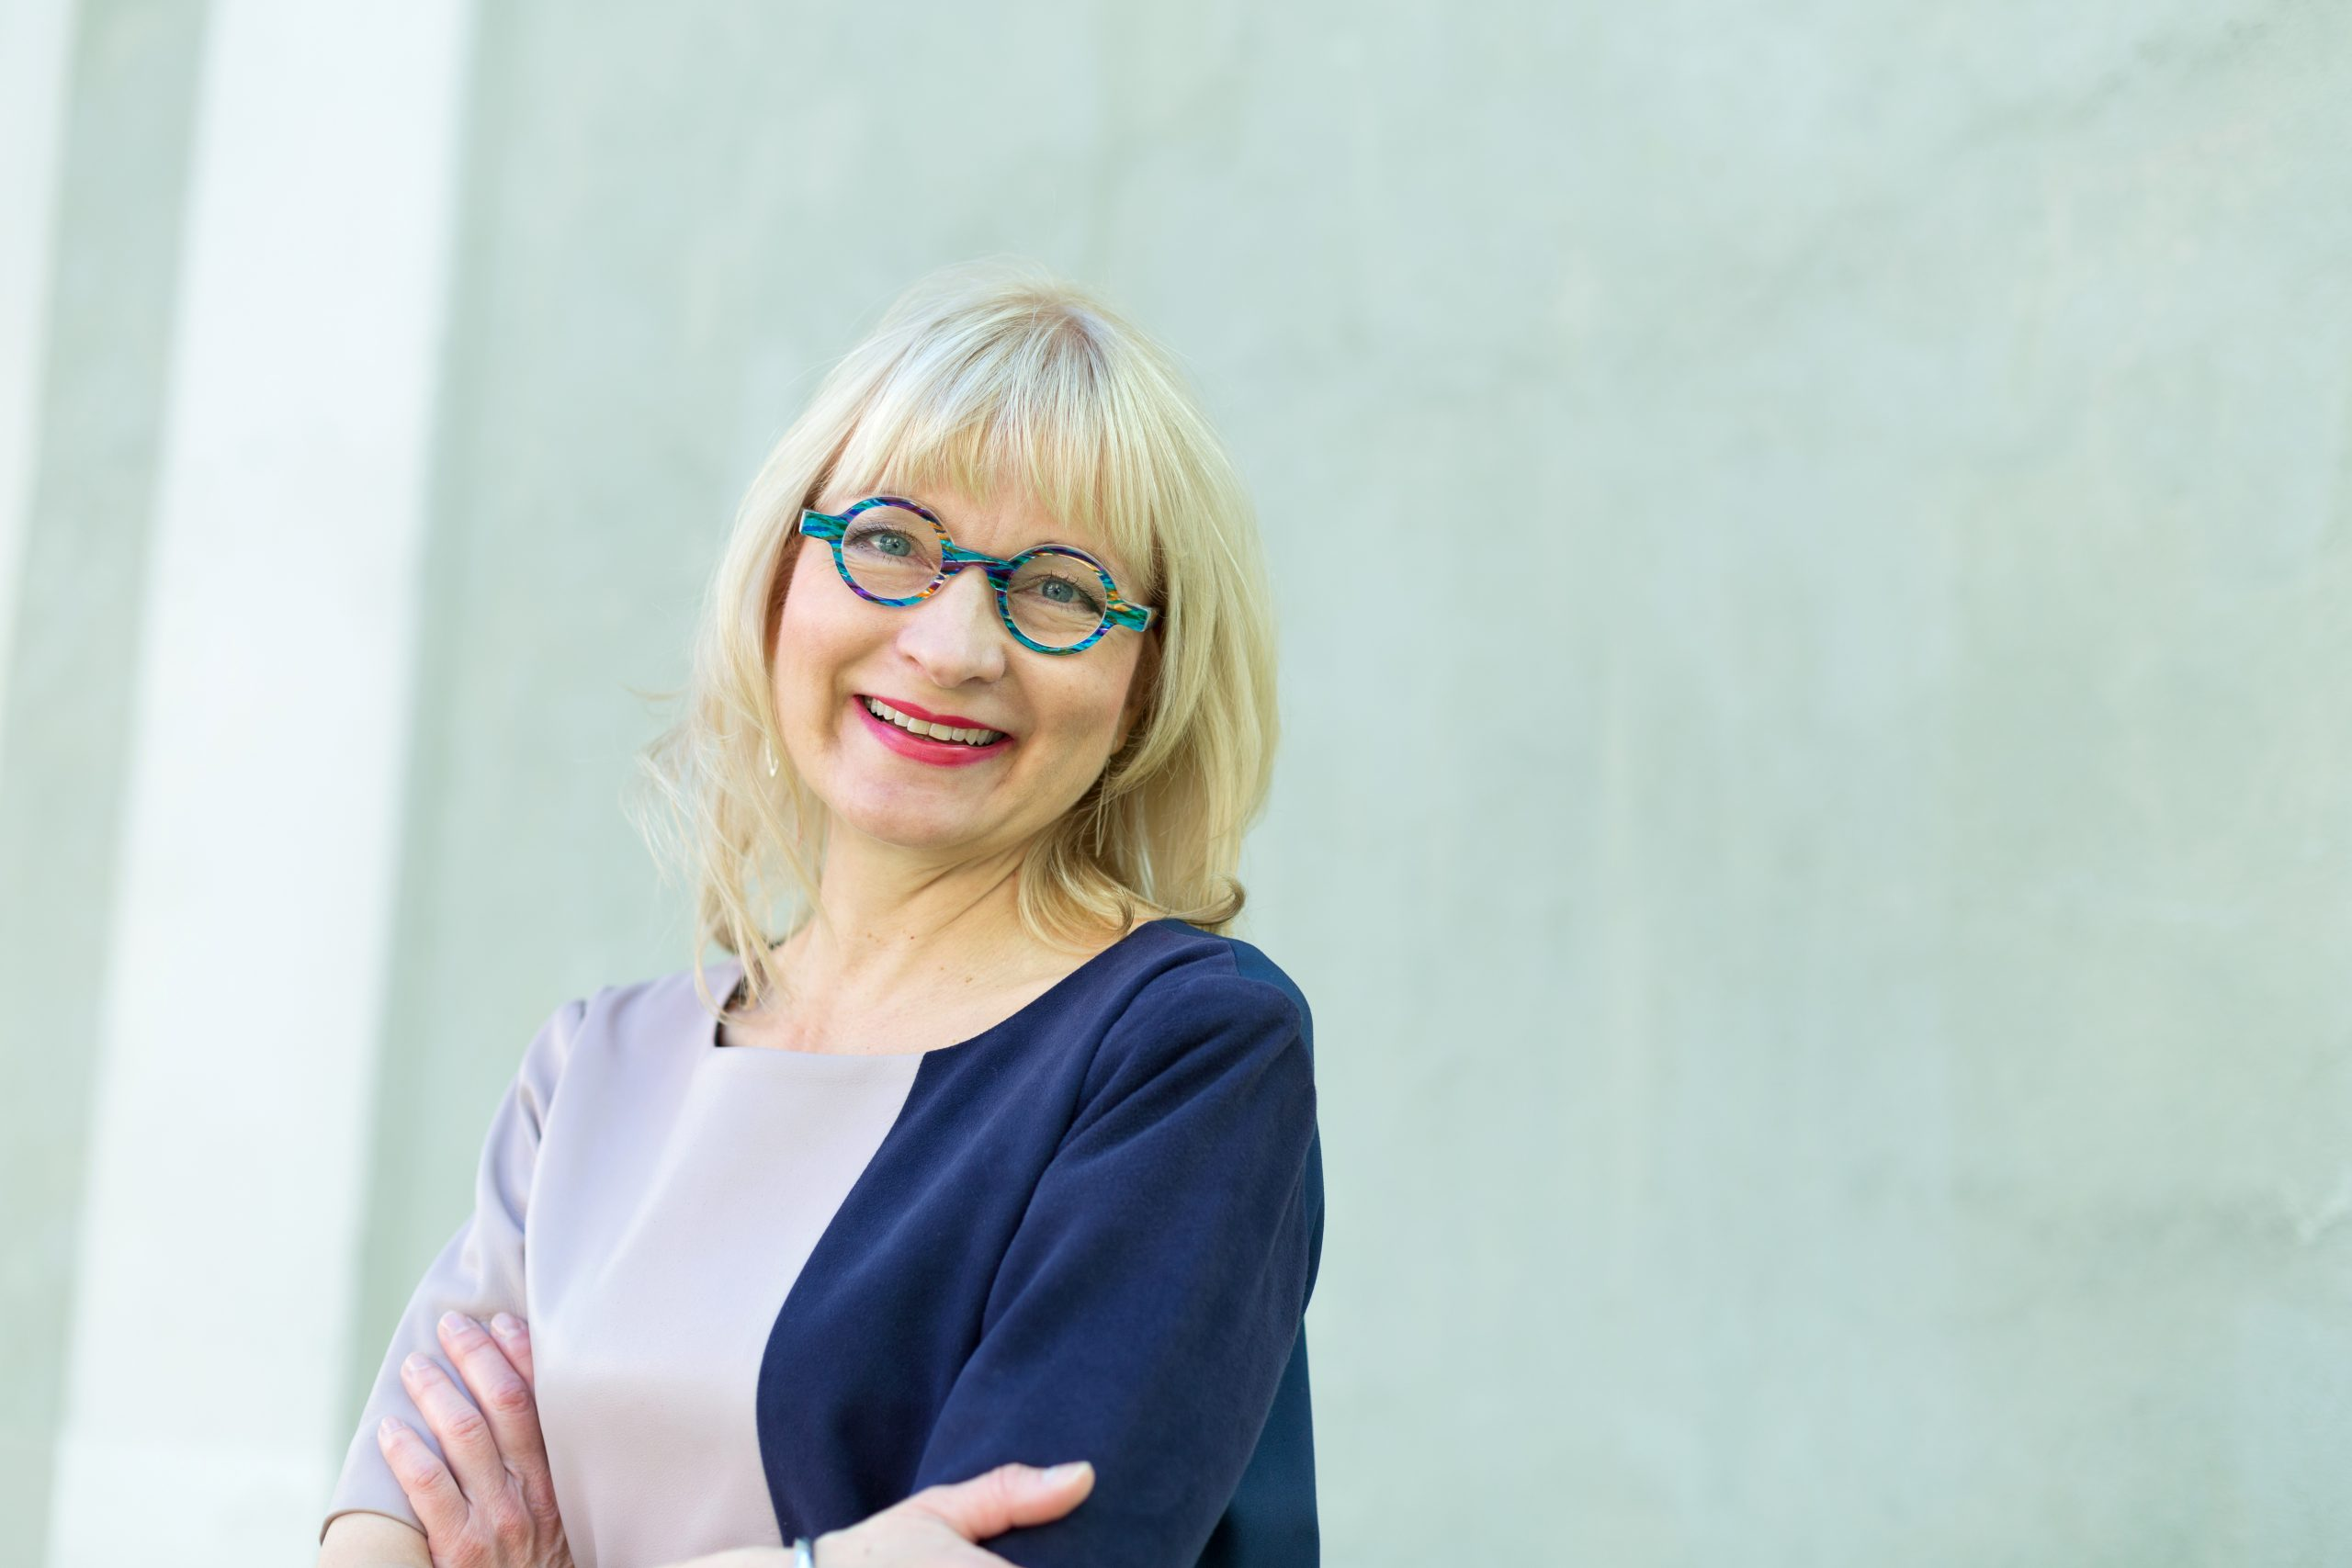 Portrait of Päivi Sillanaukee, Permanent Secretary in the Finnish Ministry of Social Affairs and Health